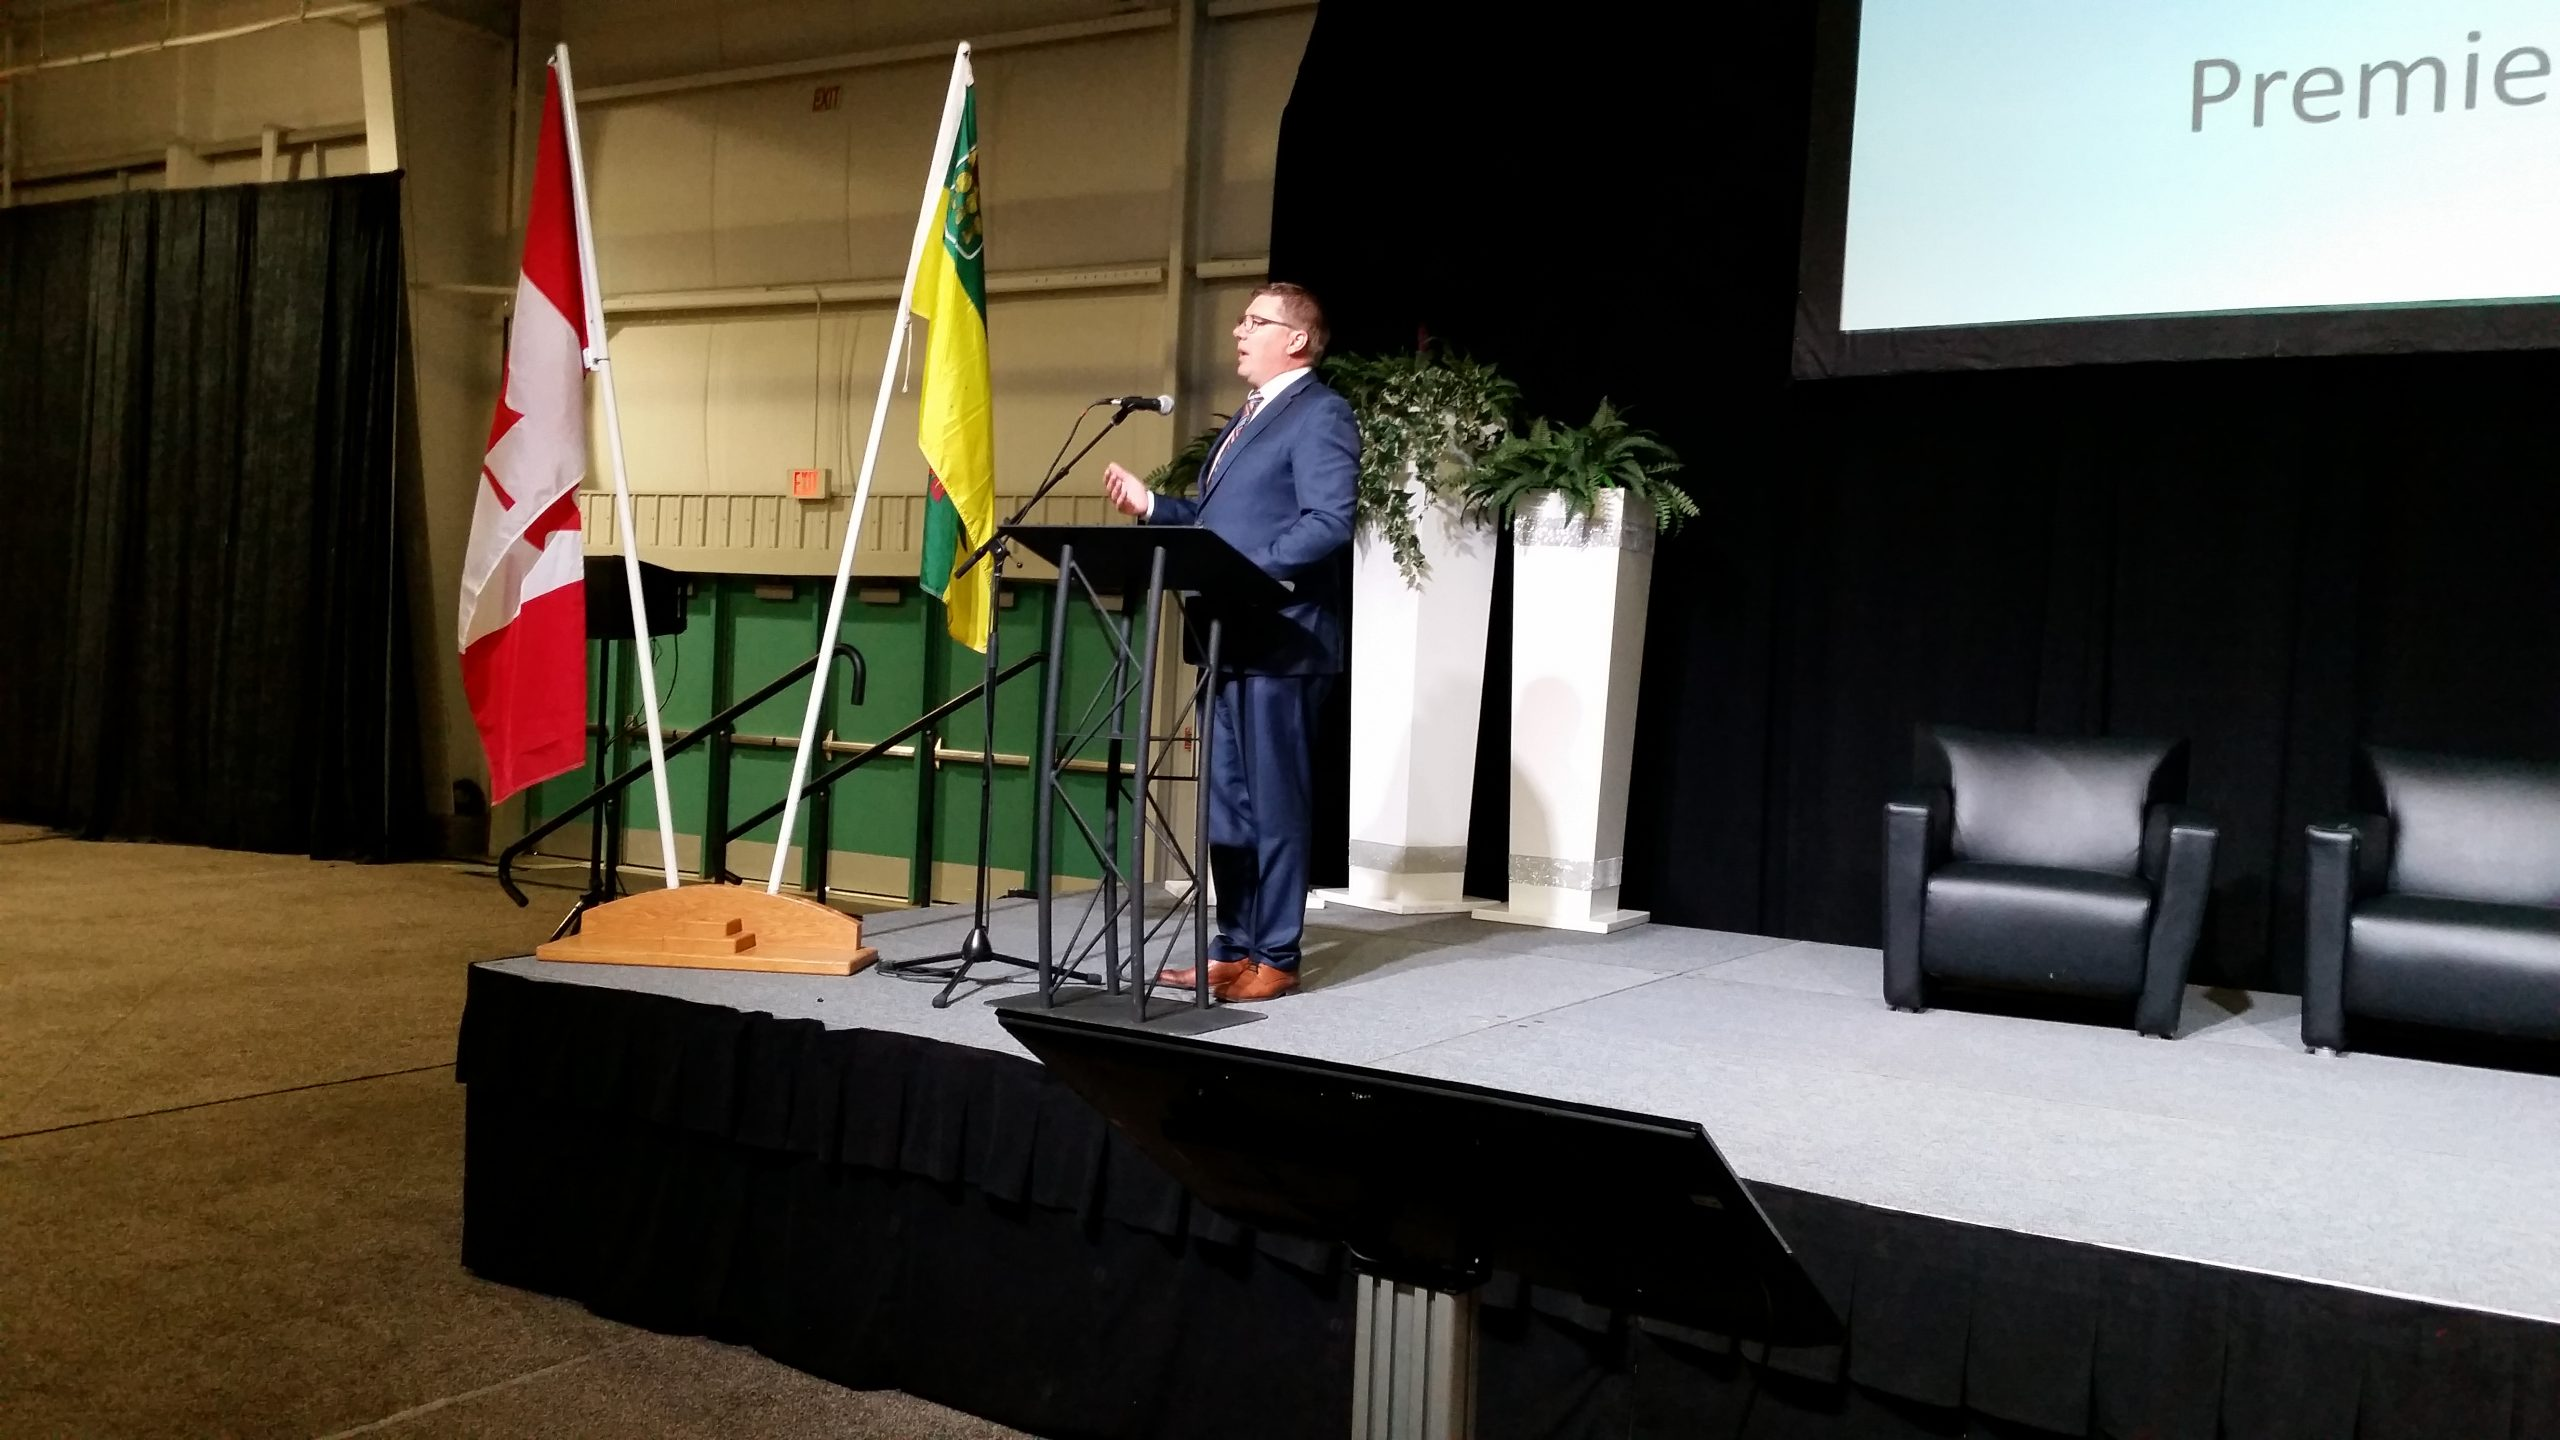 Premier Commits to fund Teachers' deal